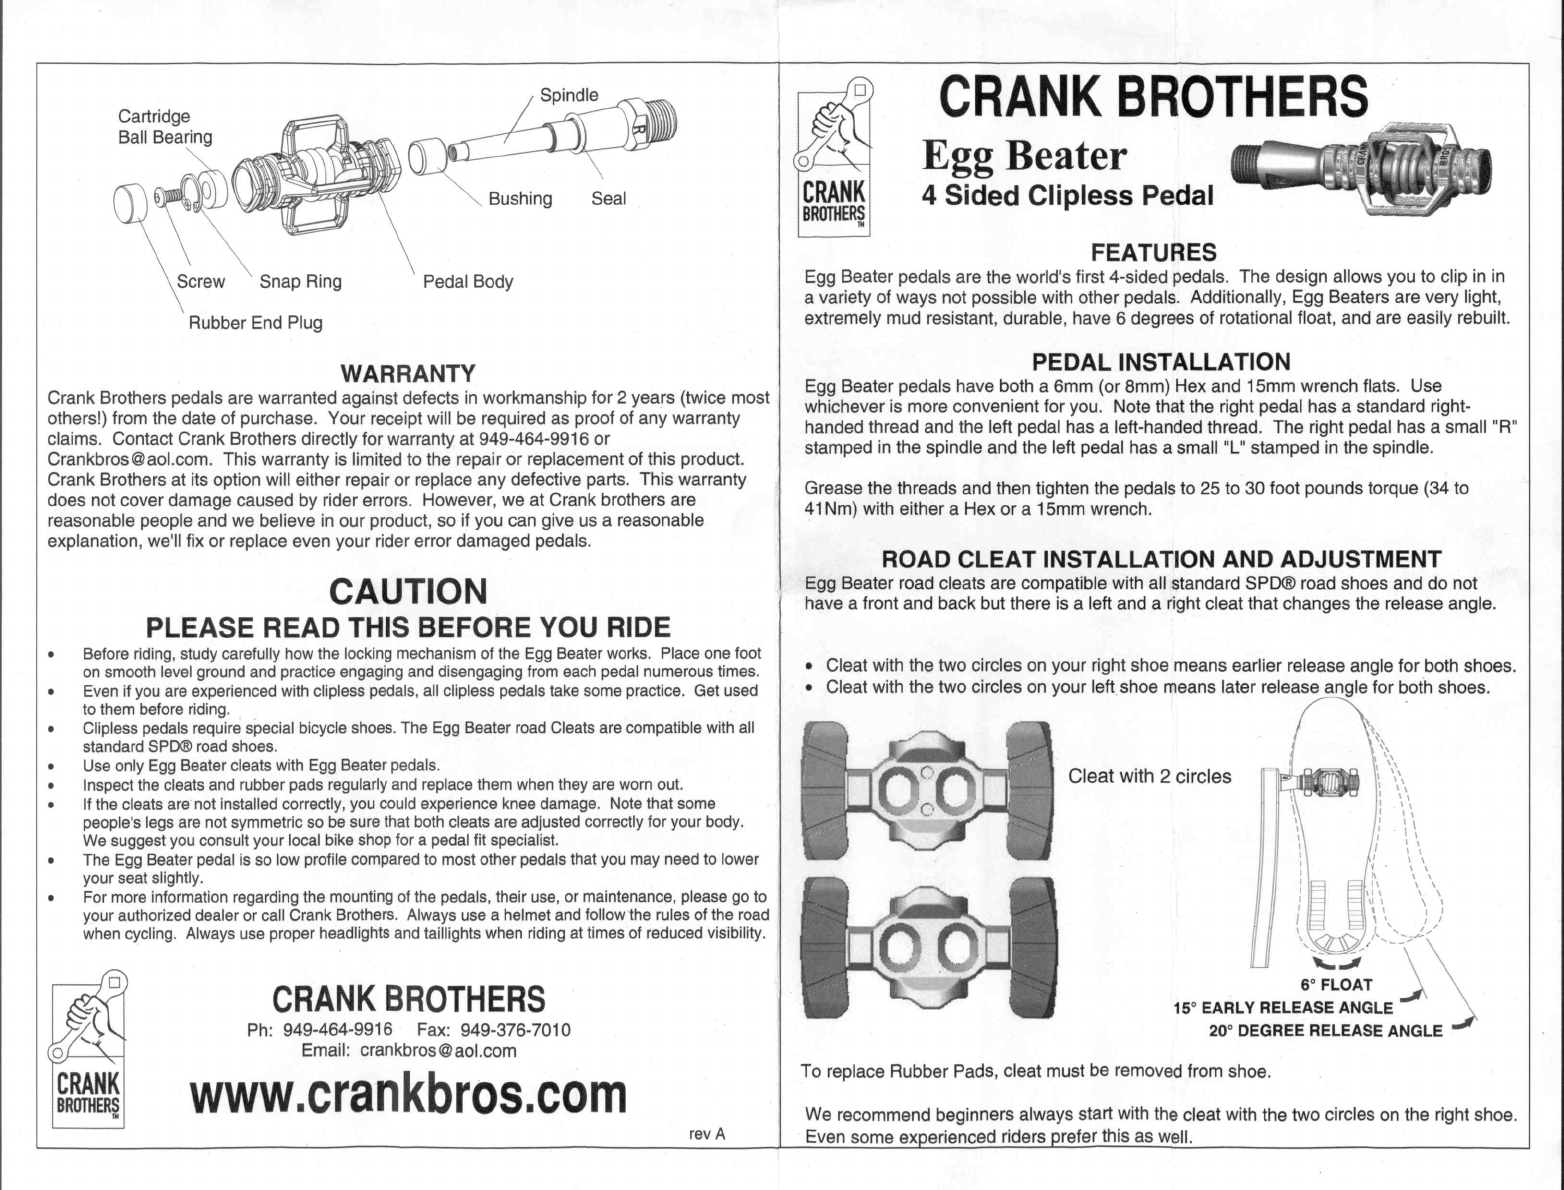 57d2d613a Handleiding Crank Brothers Egg Beater (pagina 2 van 2) (English)